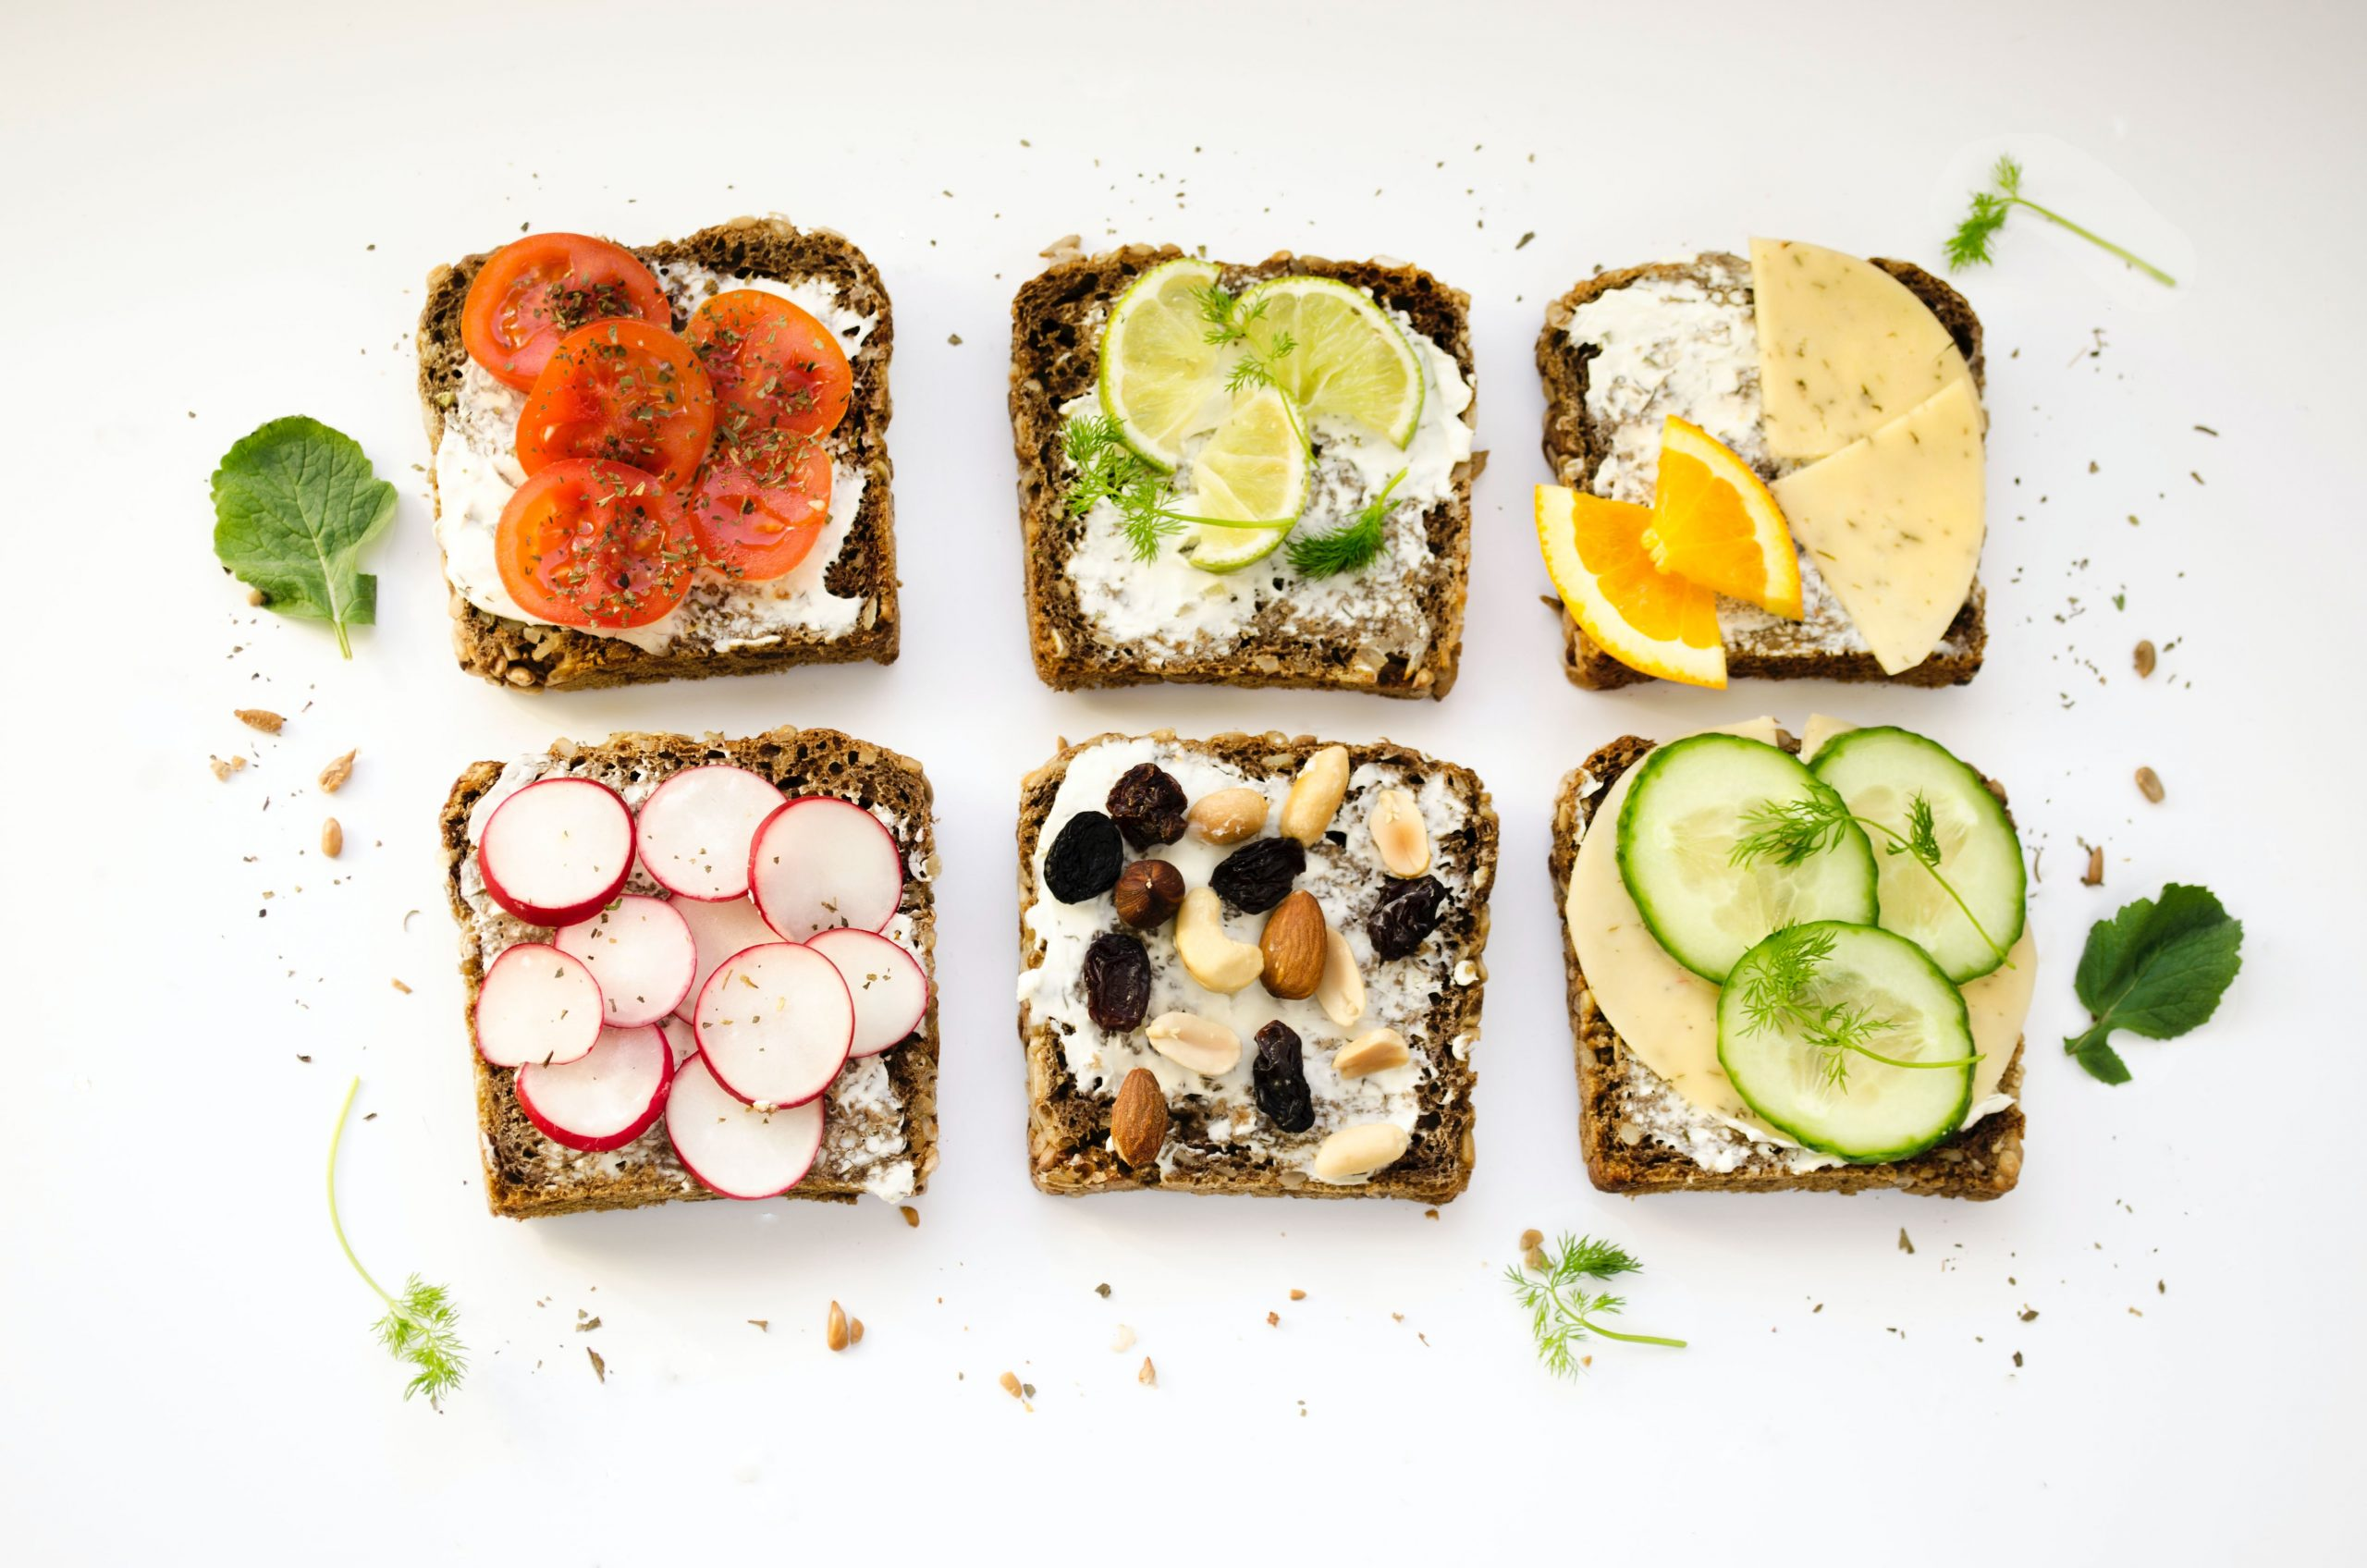 Healthy foods for busy women